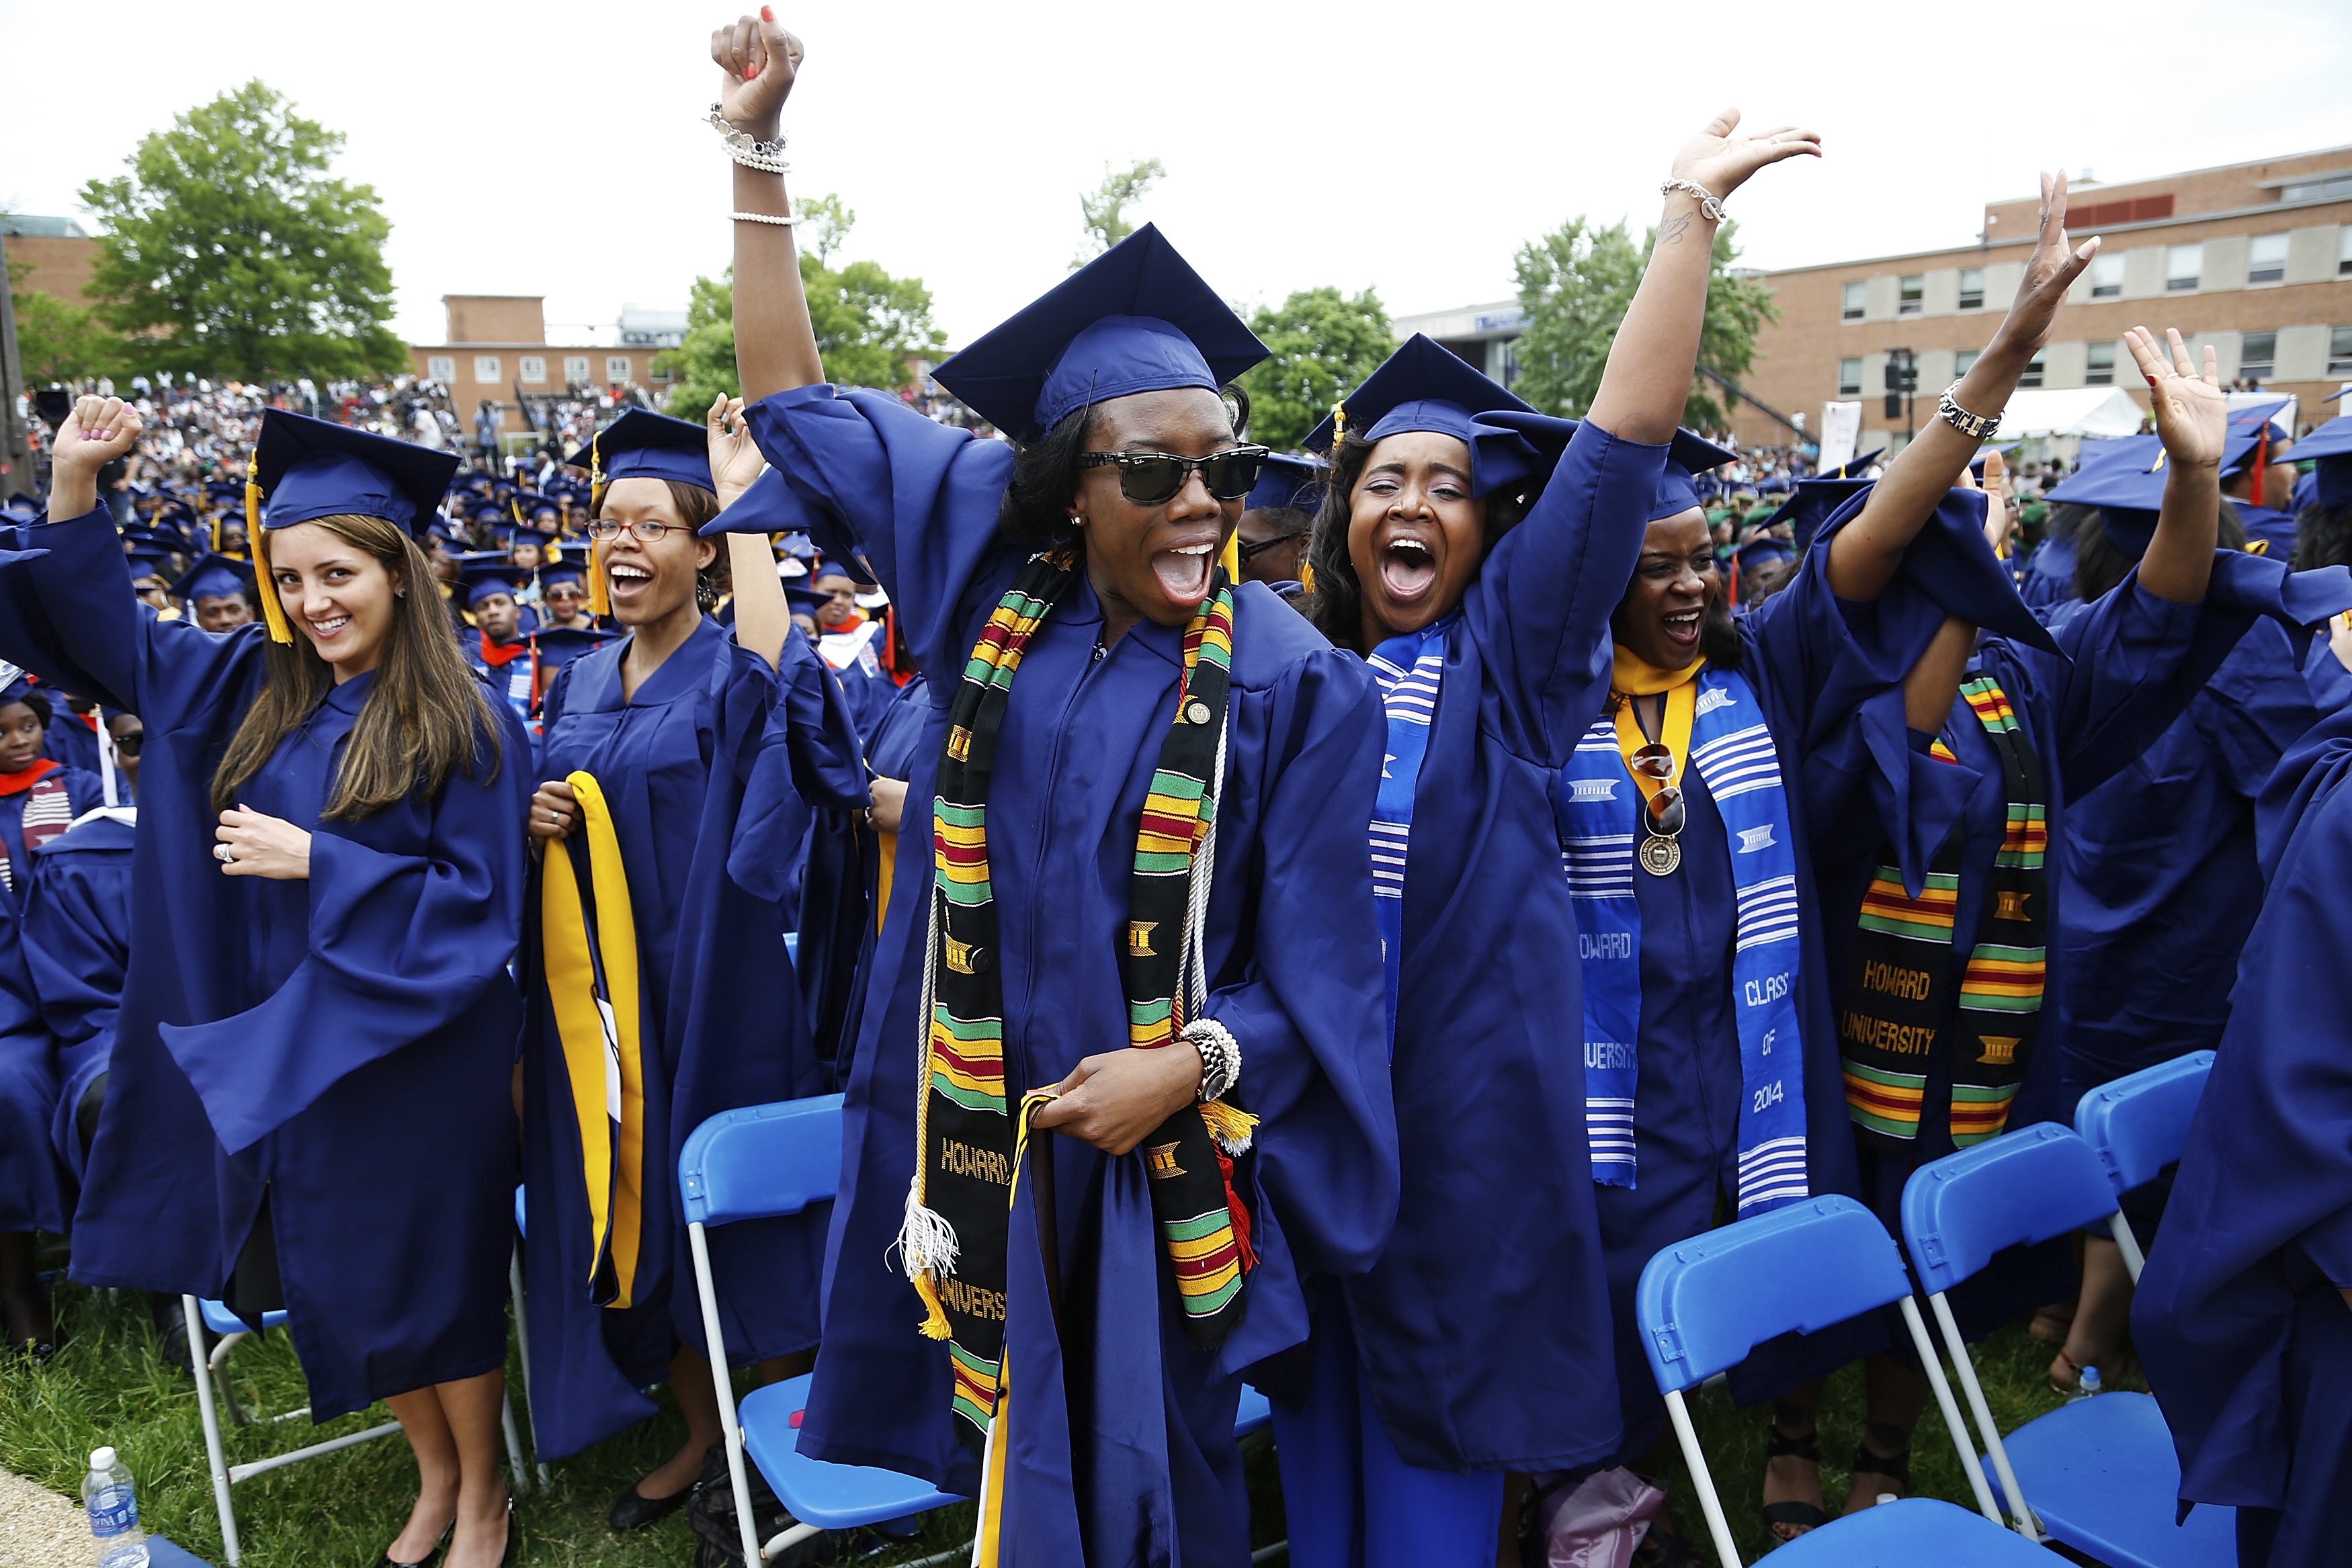 Graduates celebrate during the 2014 graduation ceremonies at Howard University, a well-known HBCU, in Washington on May 10, 2014.